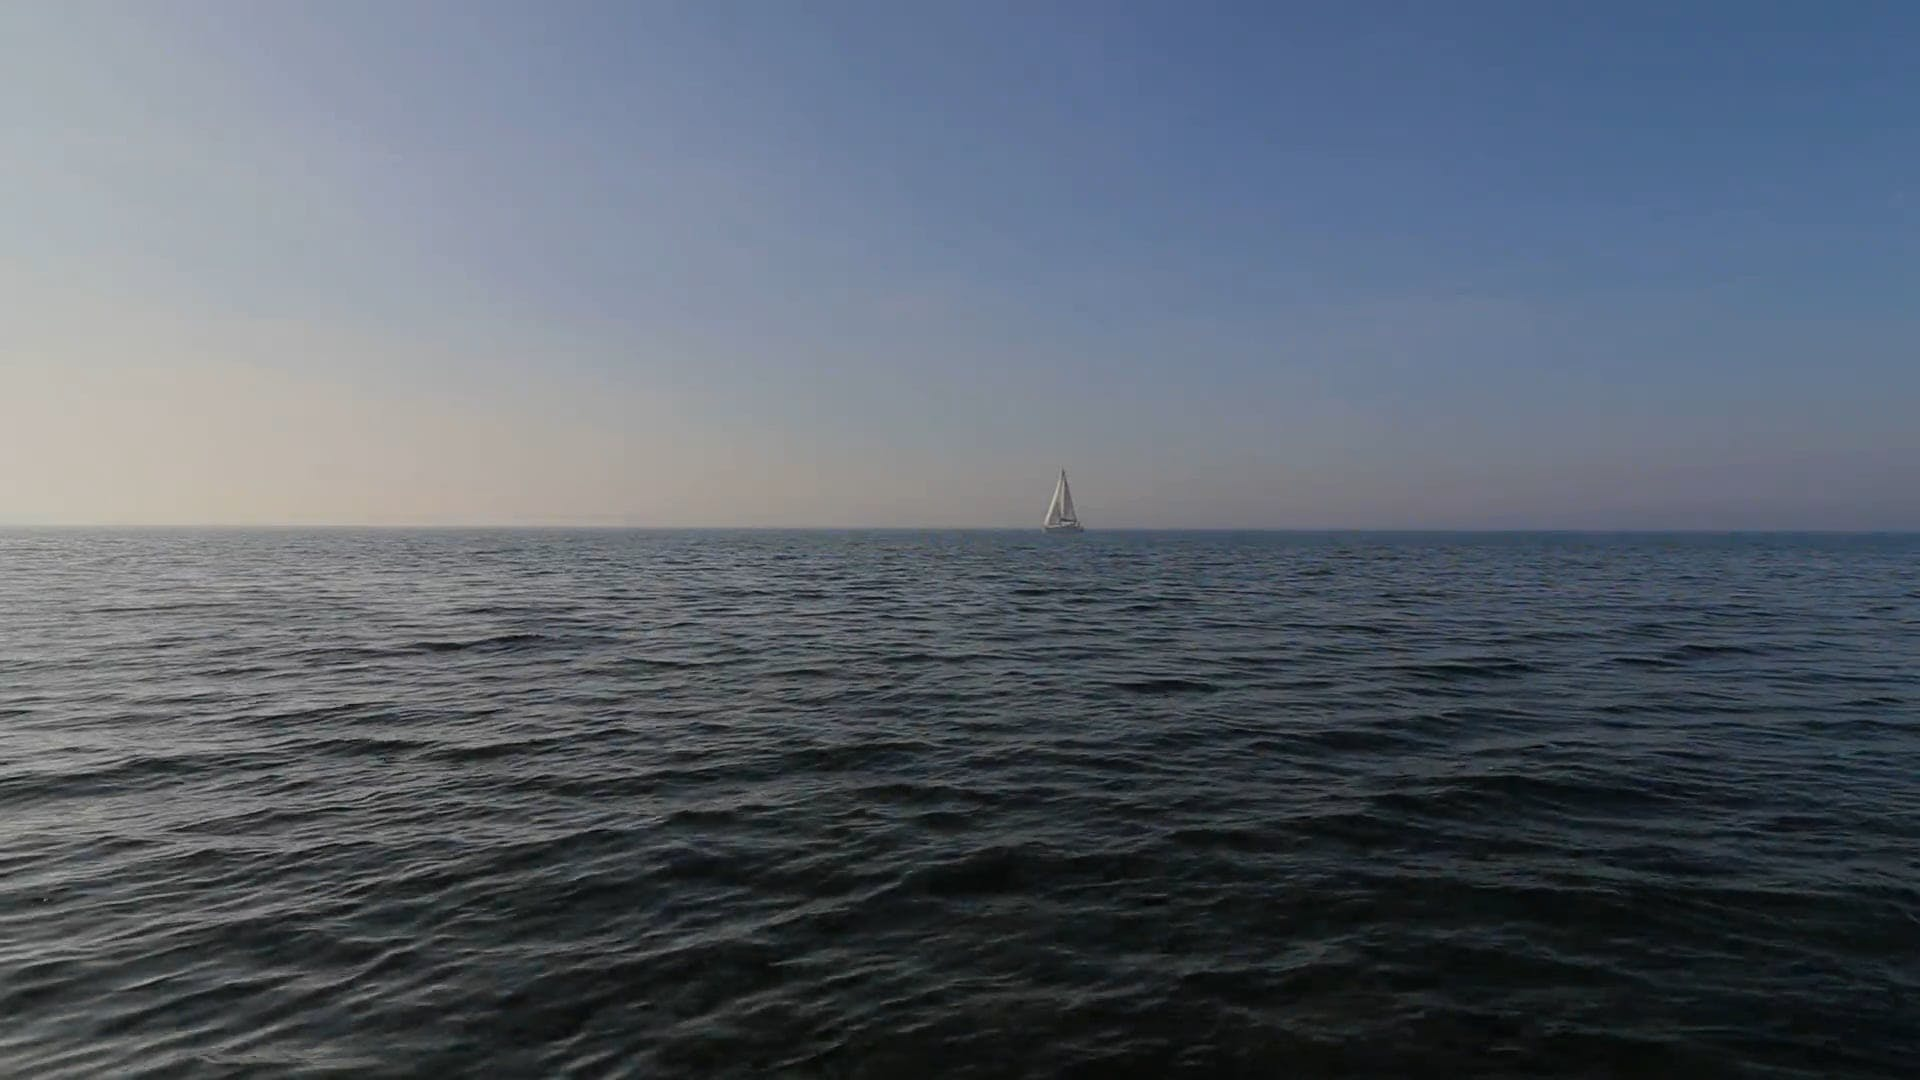 A Boat Sailing In The Middle Of The Sea